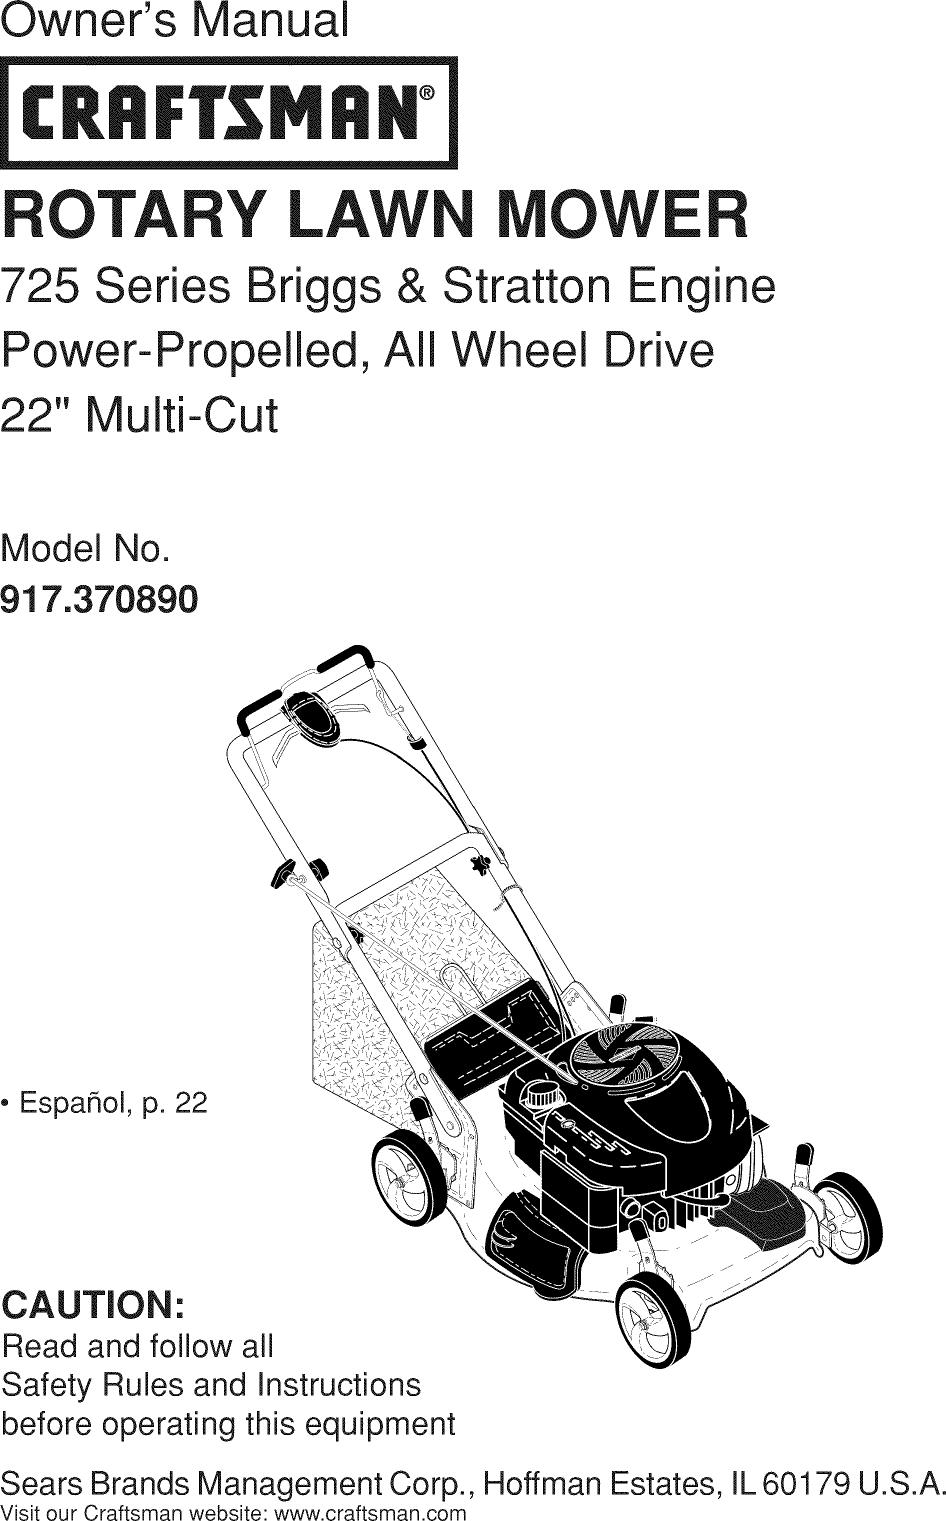 Craftsman 917370890 User Manual MOWER Manuals And Guides